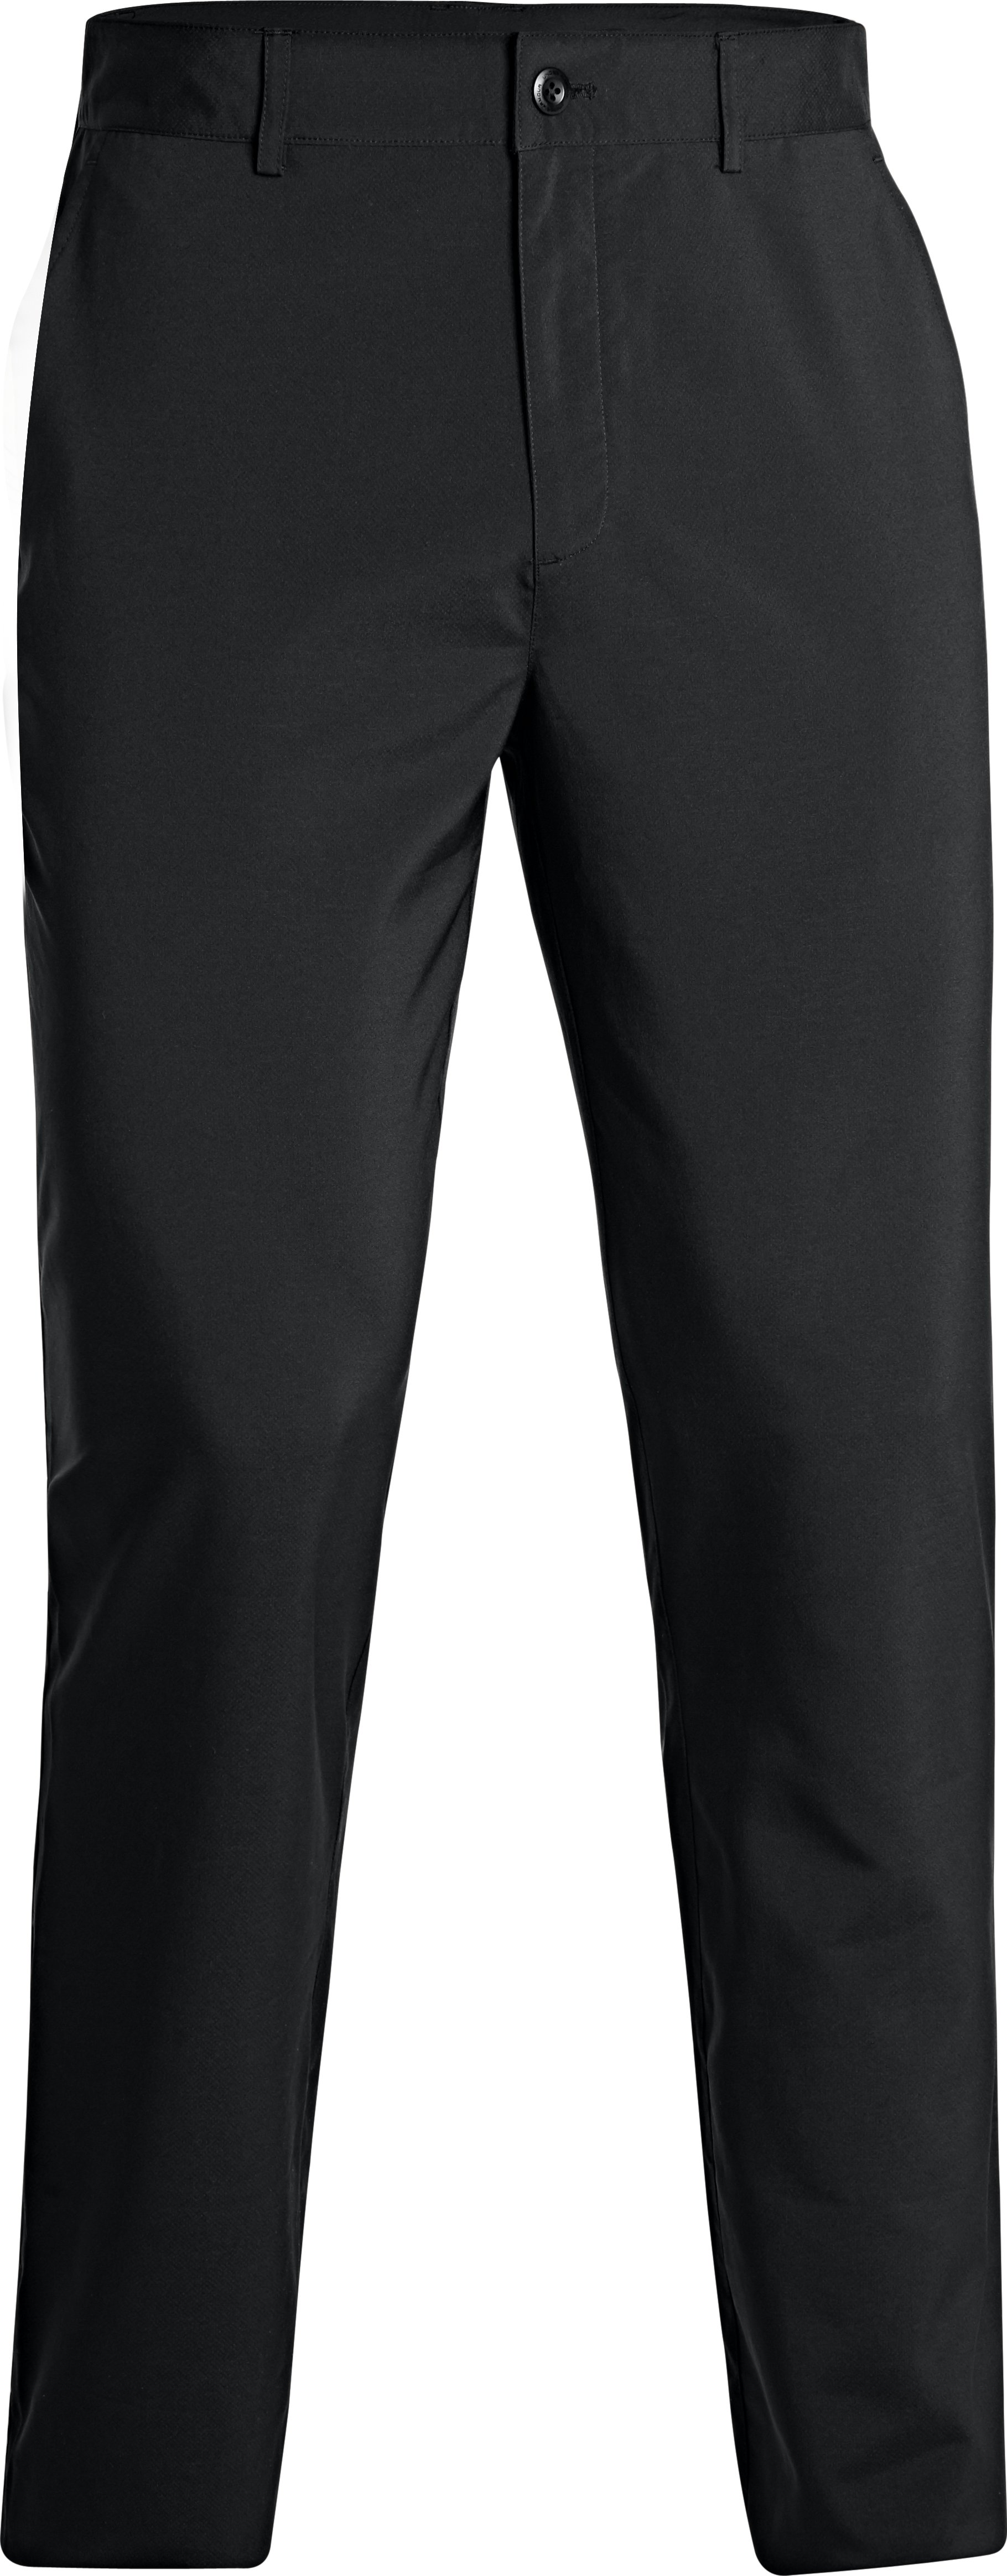 Men's UA Team Undeniable Pants, Black